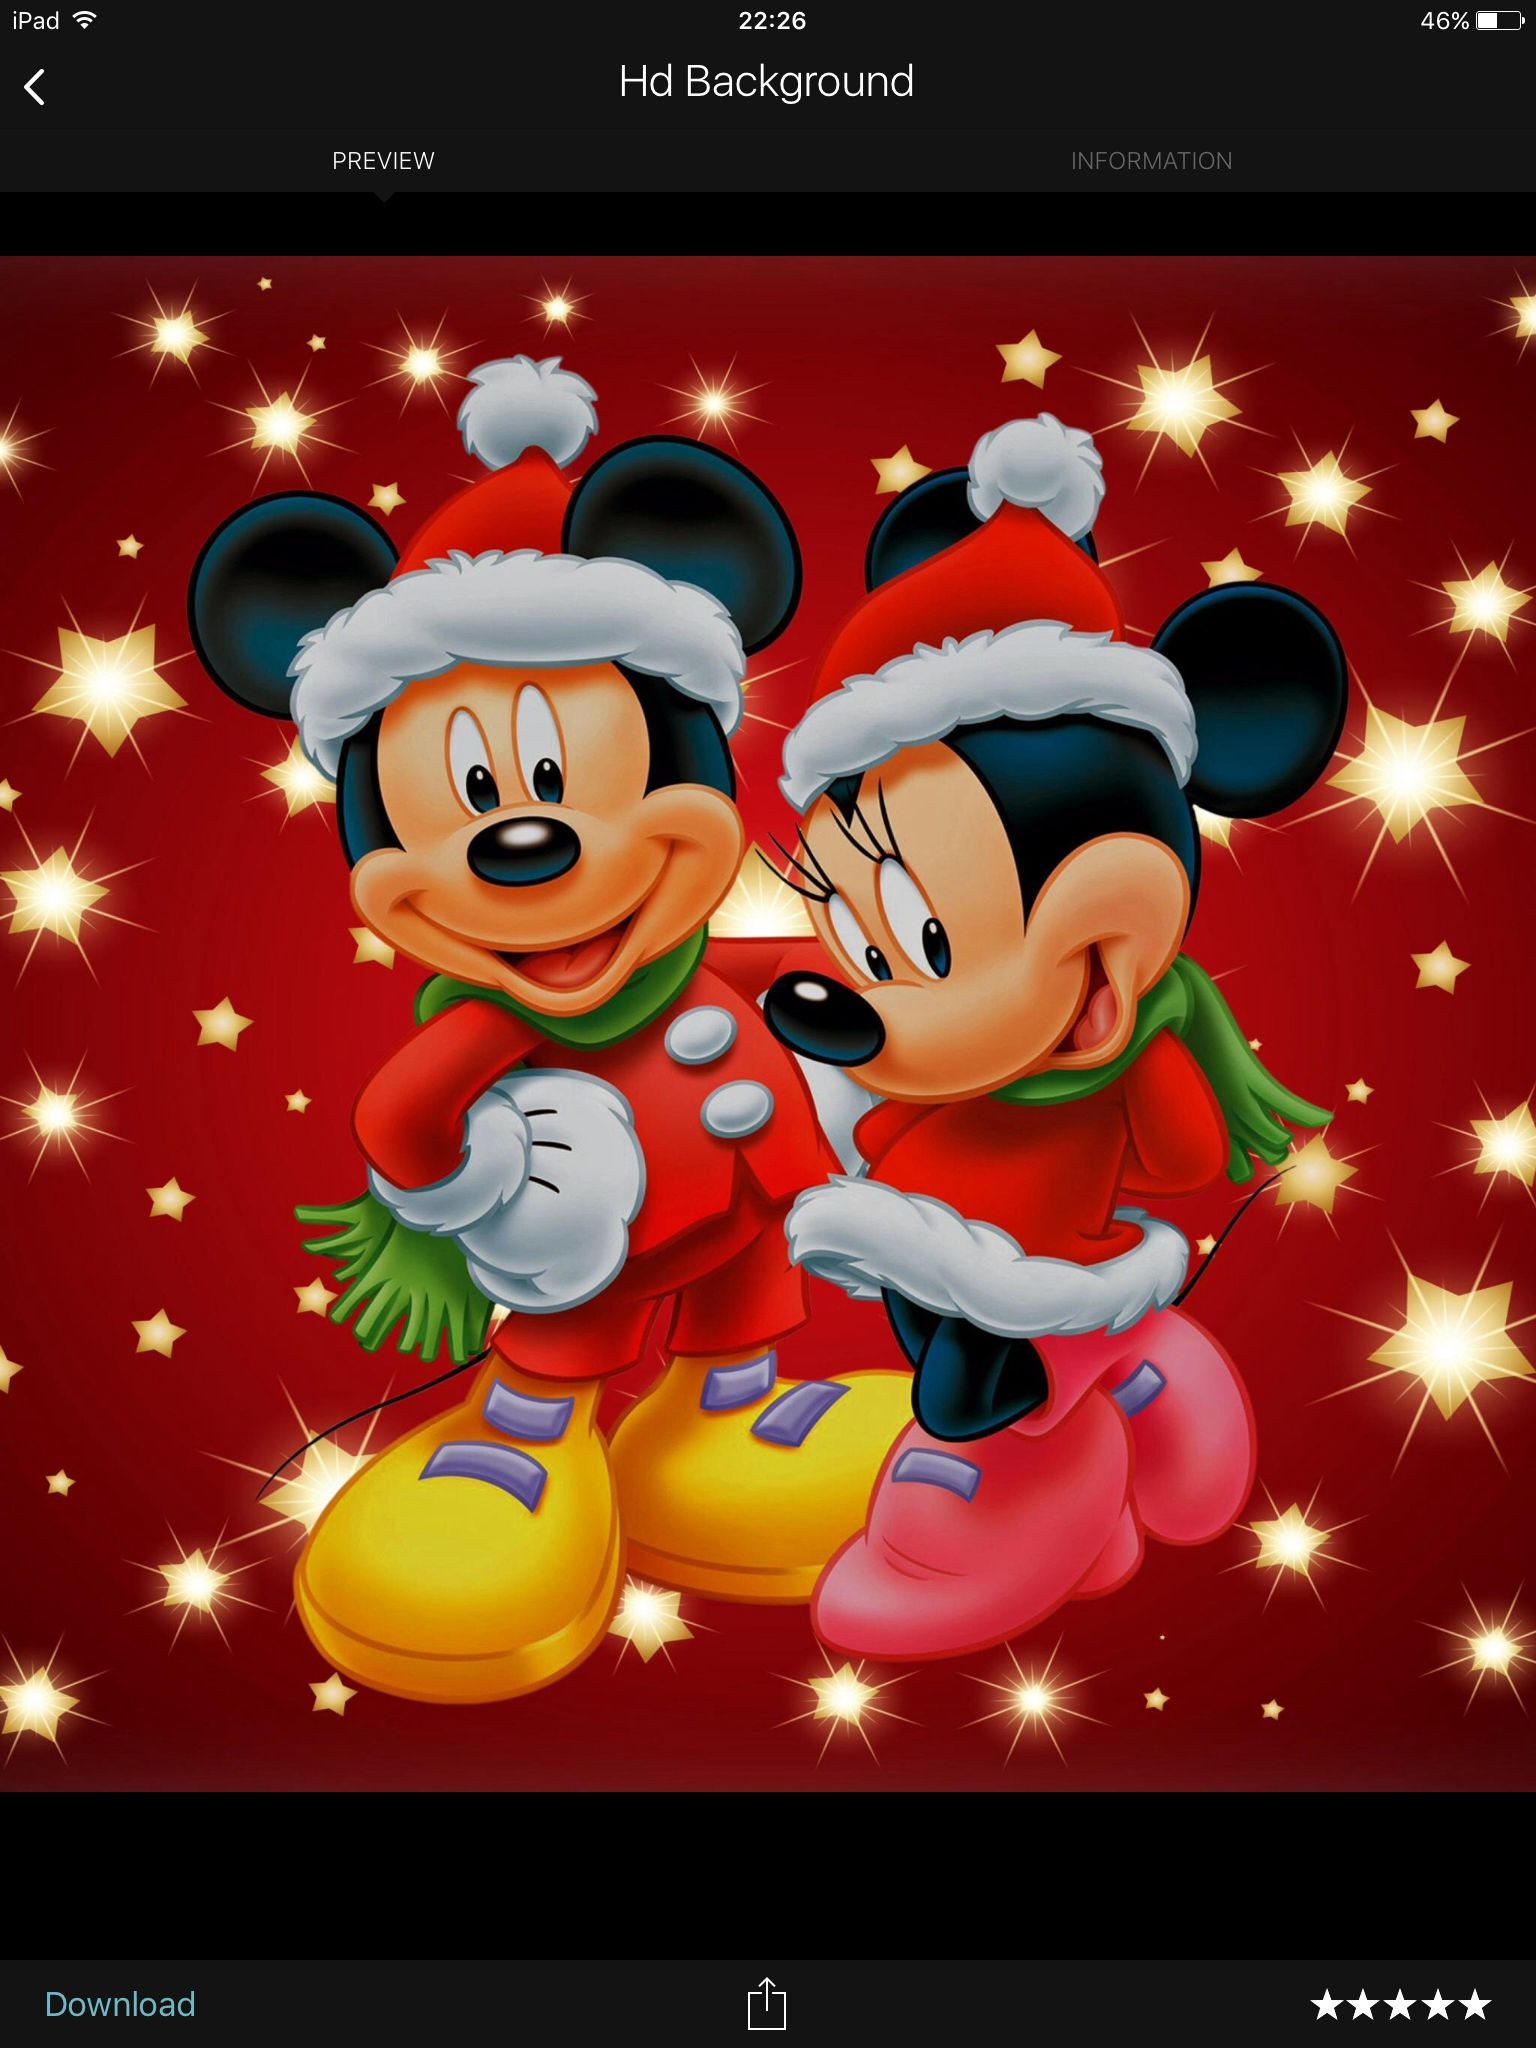 I love Mickey Mouse and Minnie Mouse there so cute